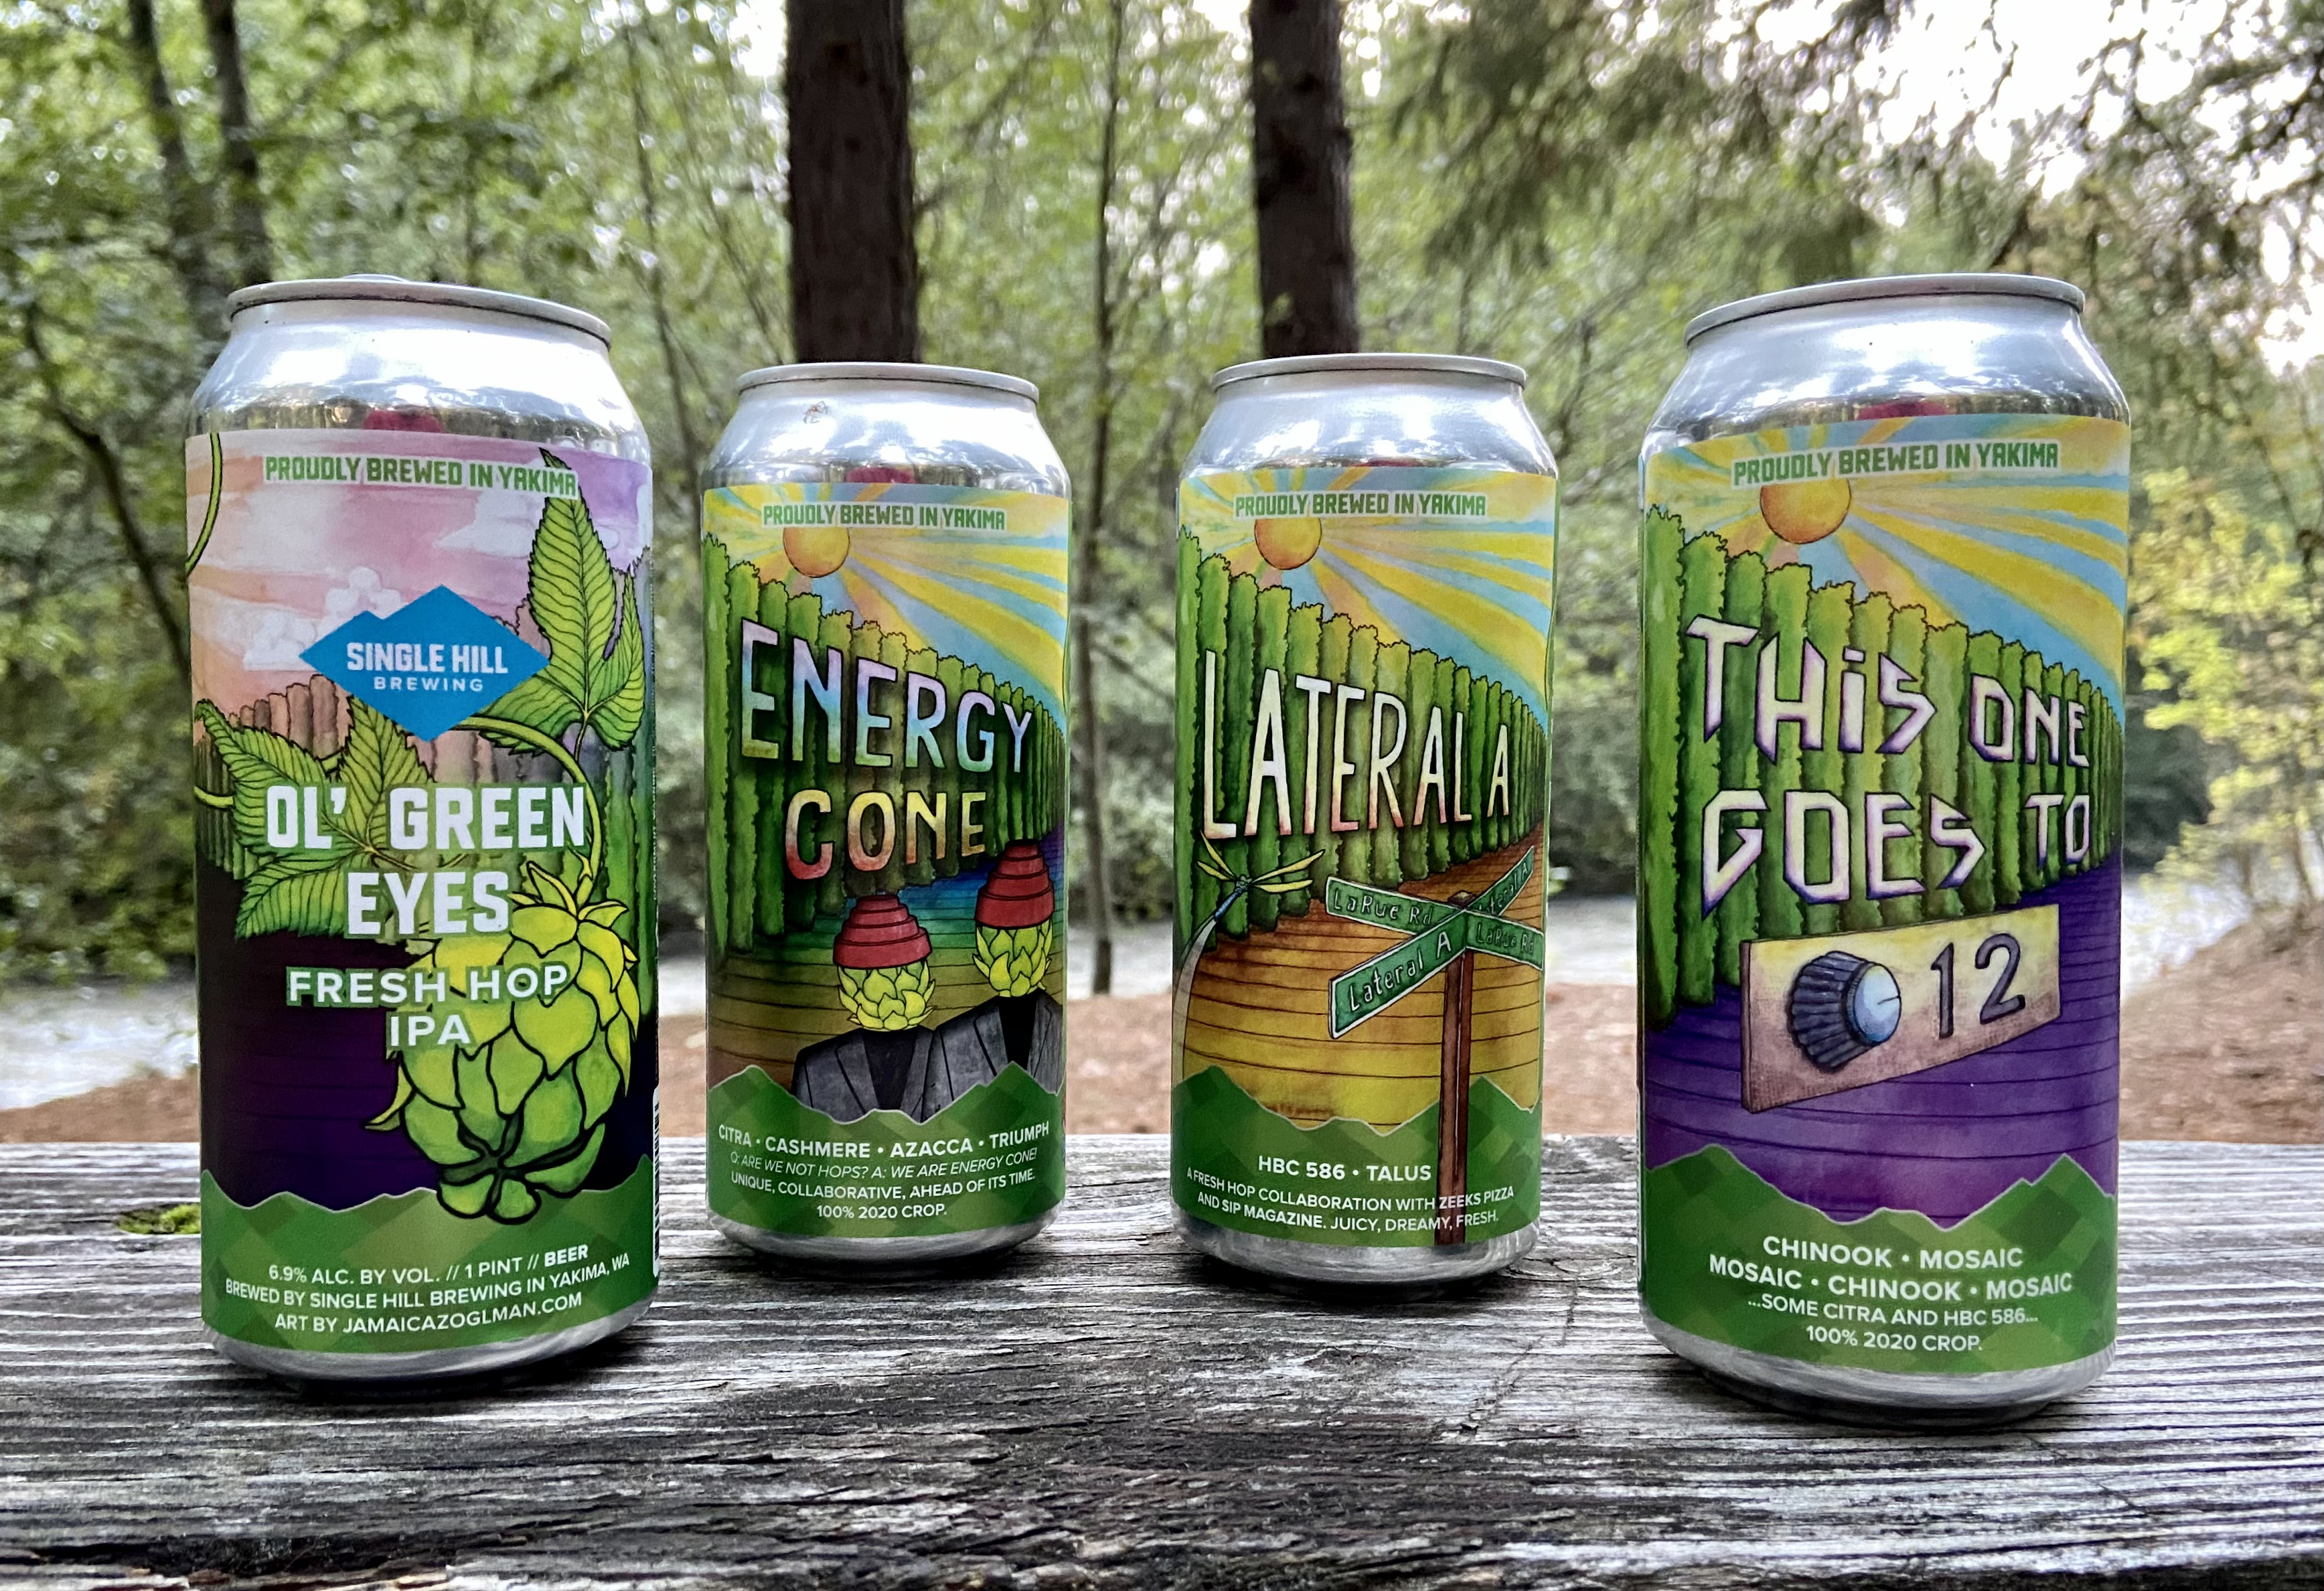 The fresh hop beers released by Single Hill Brewing this past harvest were all exceptional examples of the style.